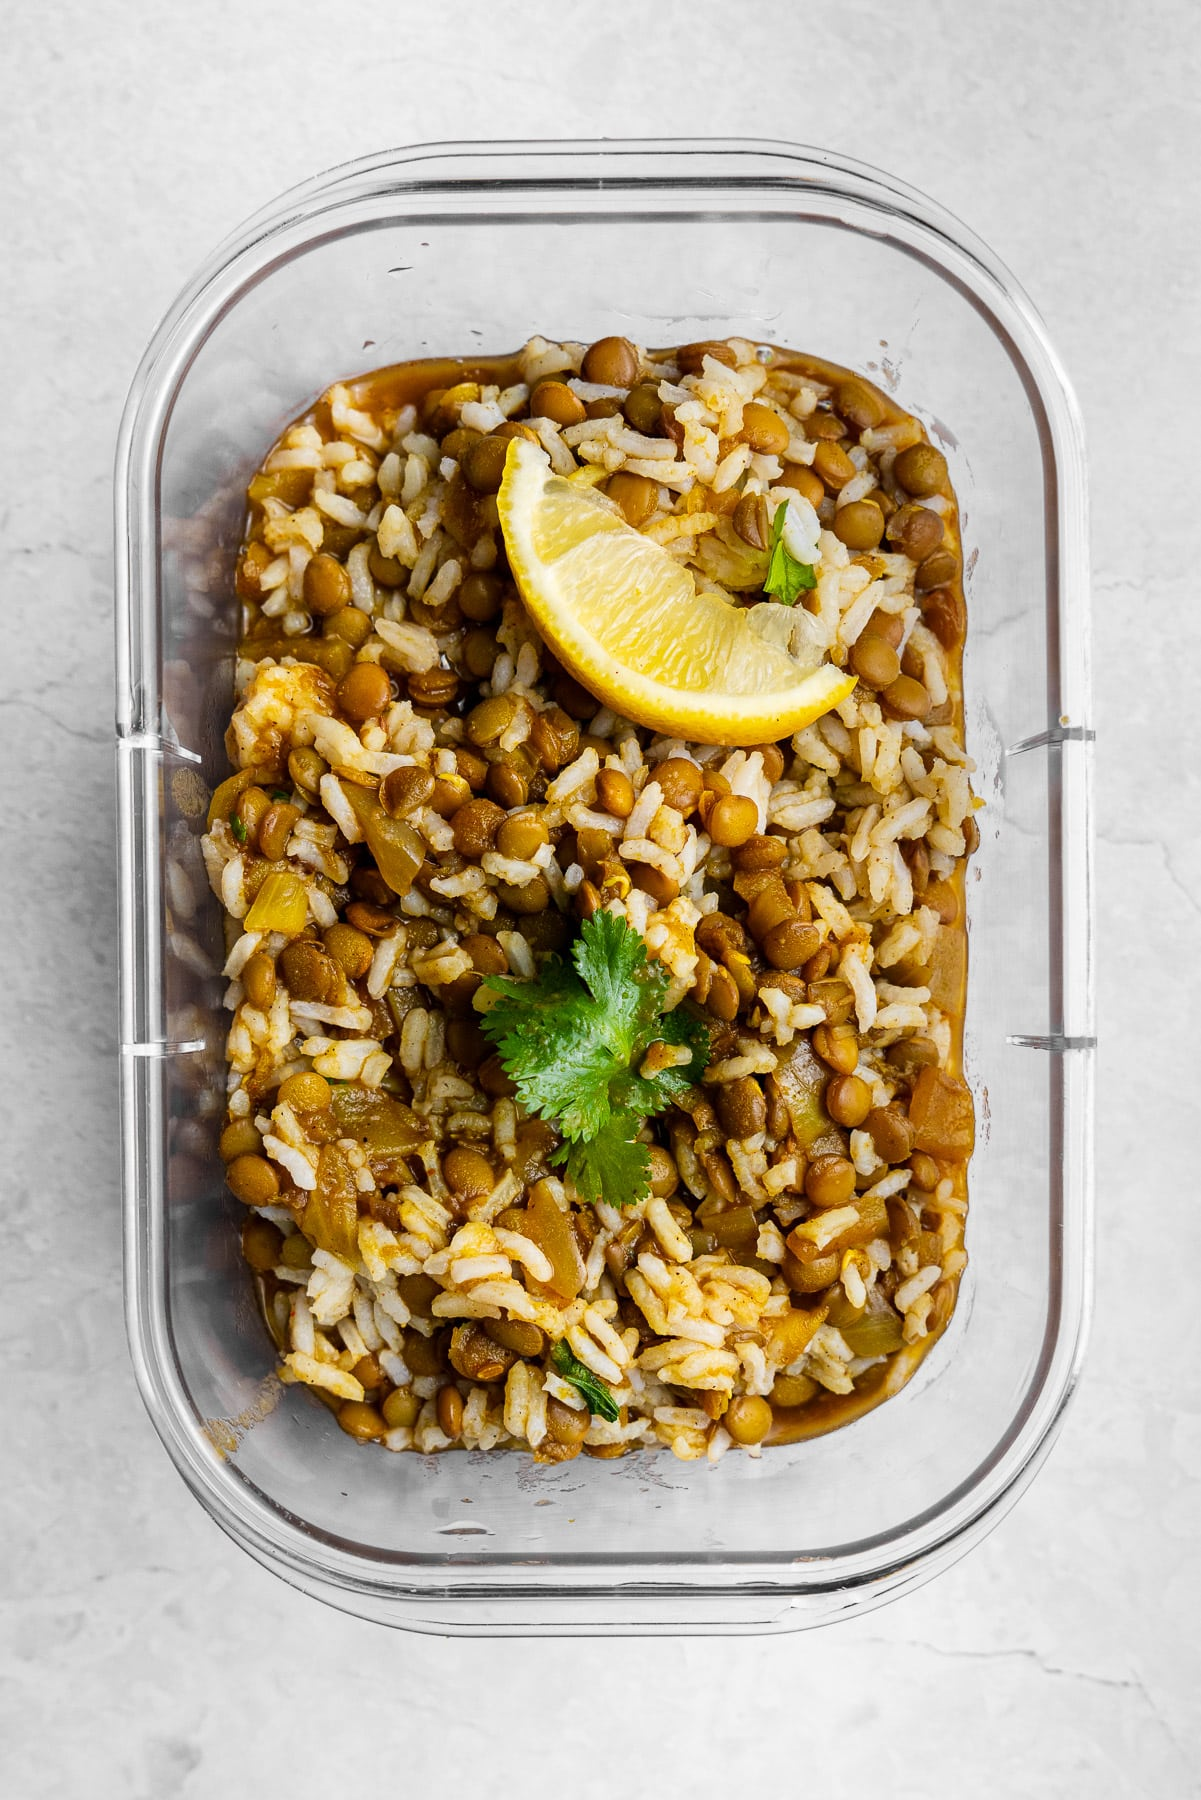 masoor dal mixed with rice, cilantro, with a lemon wedge in a meal prep container